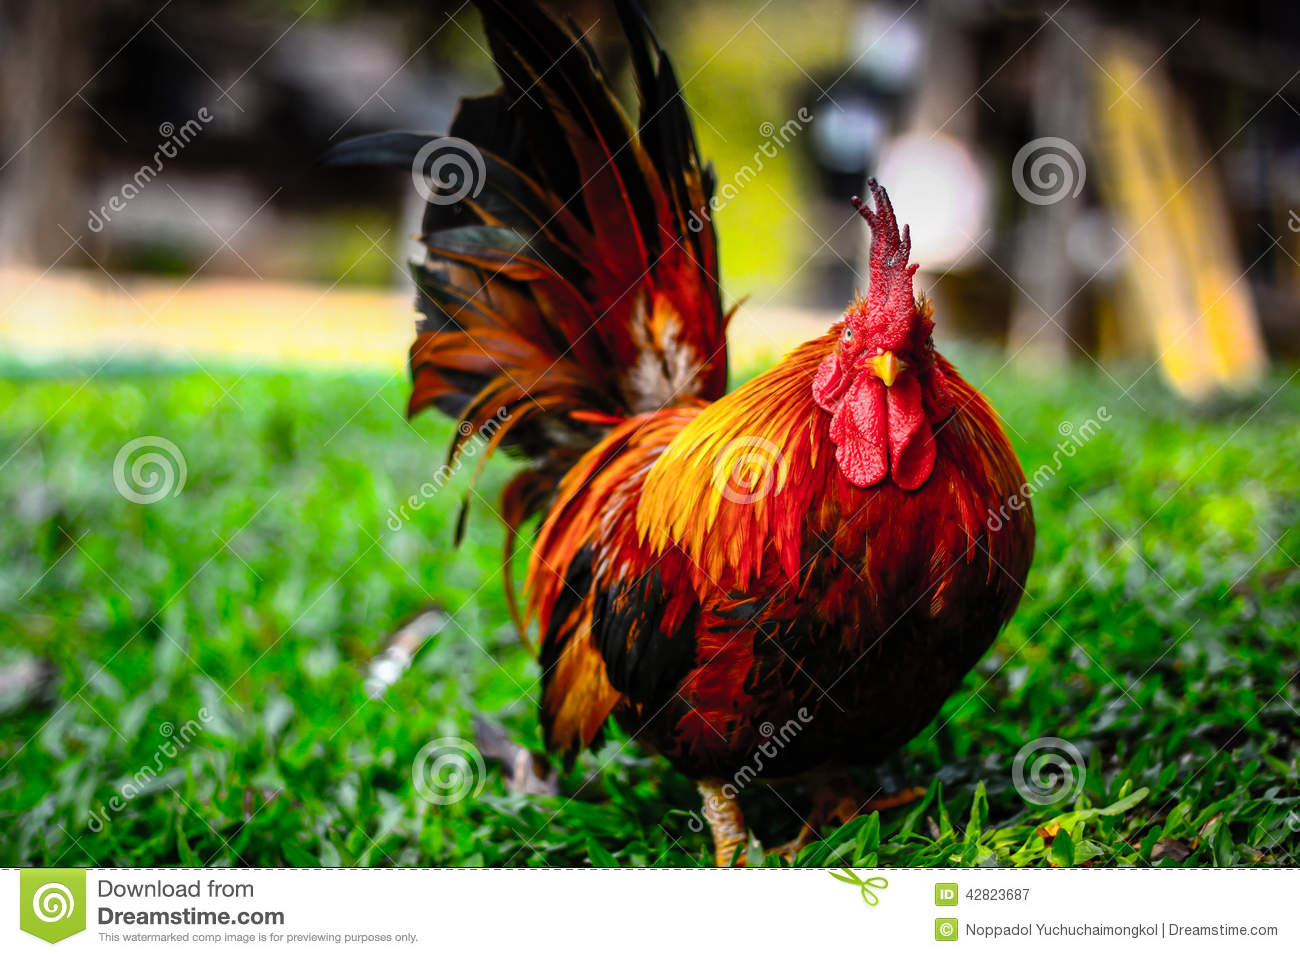 What is the smallest rooster size?